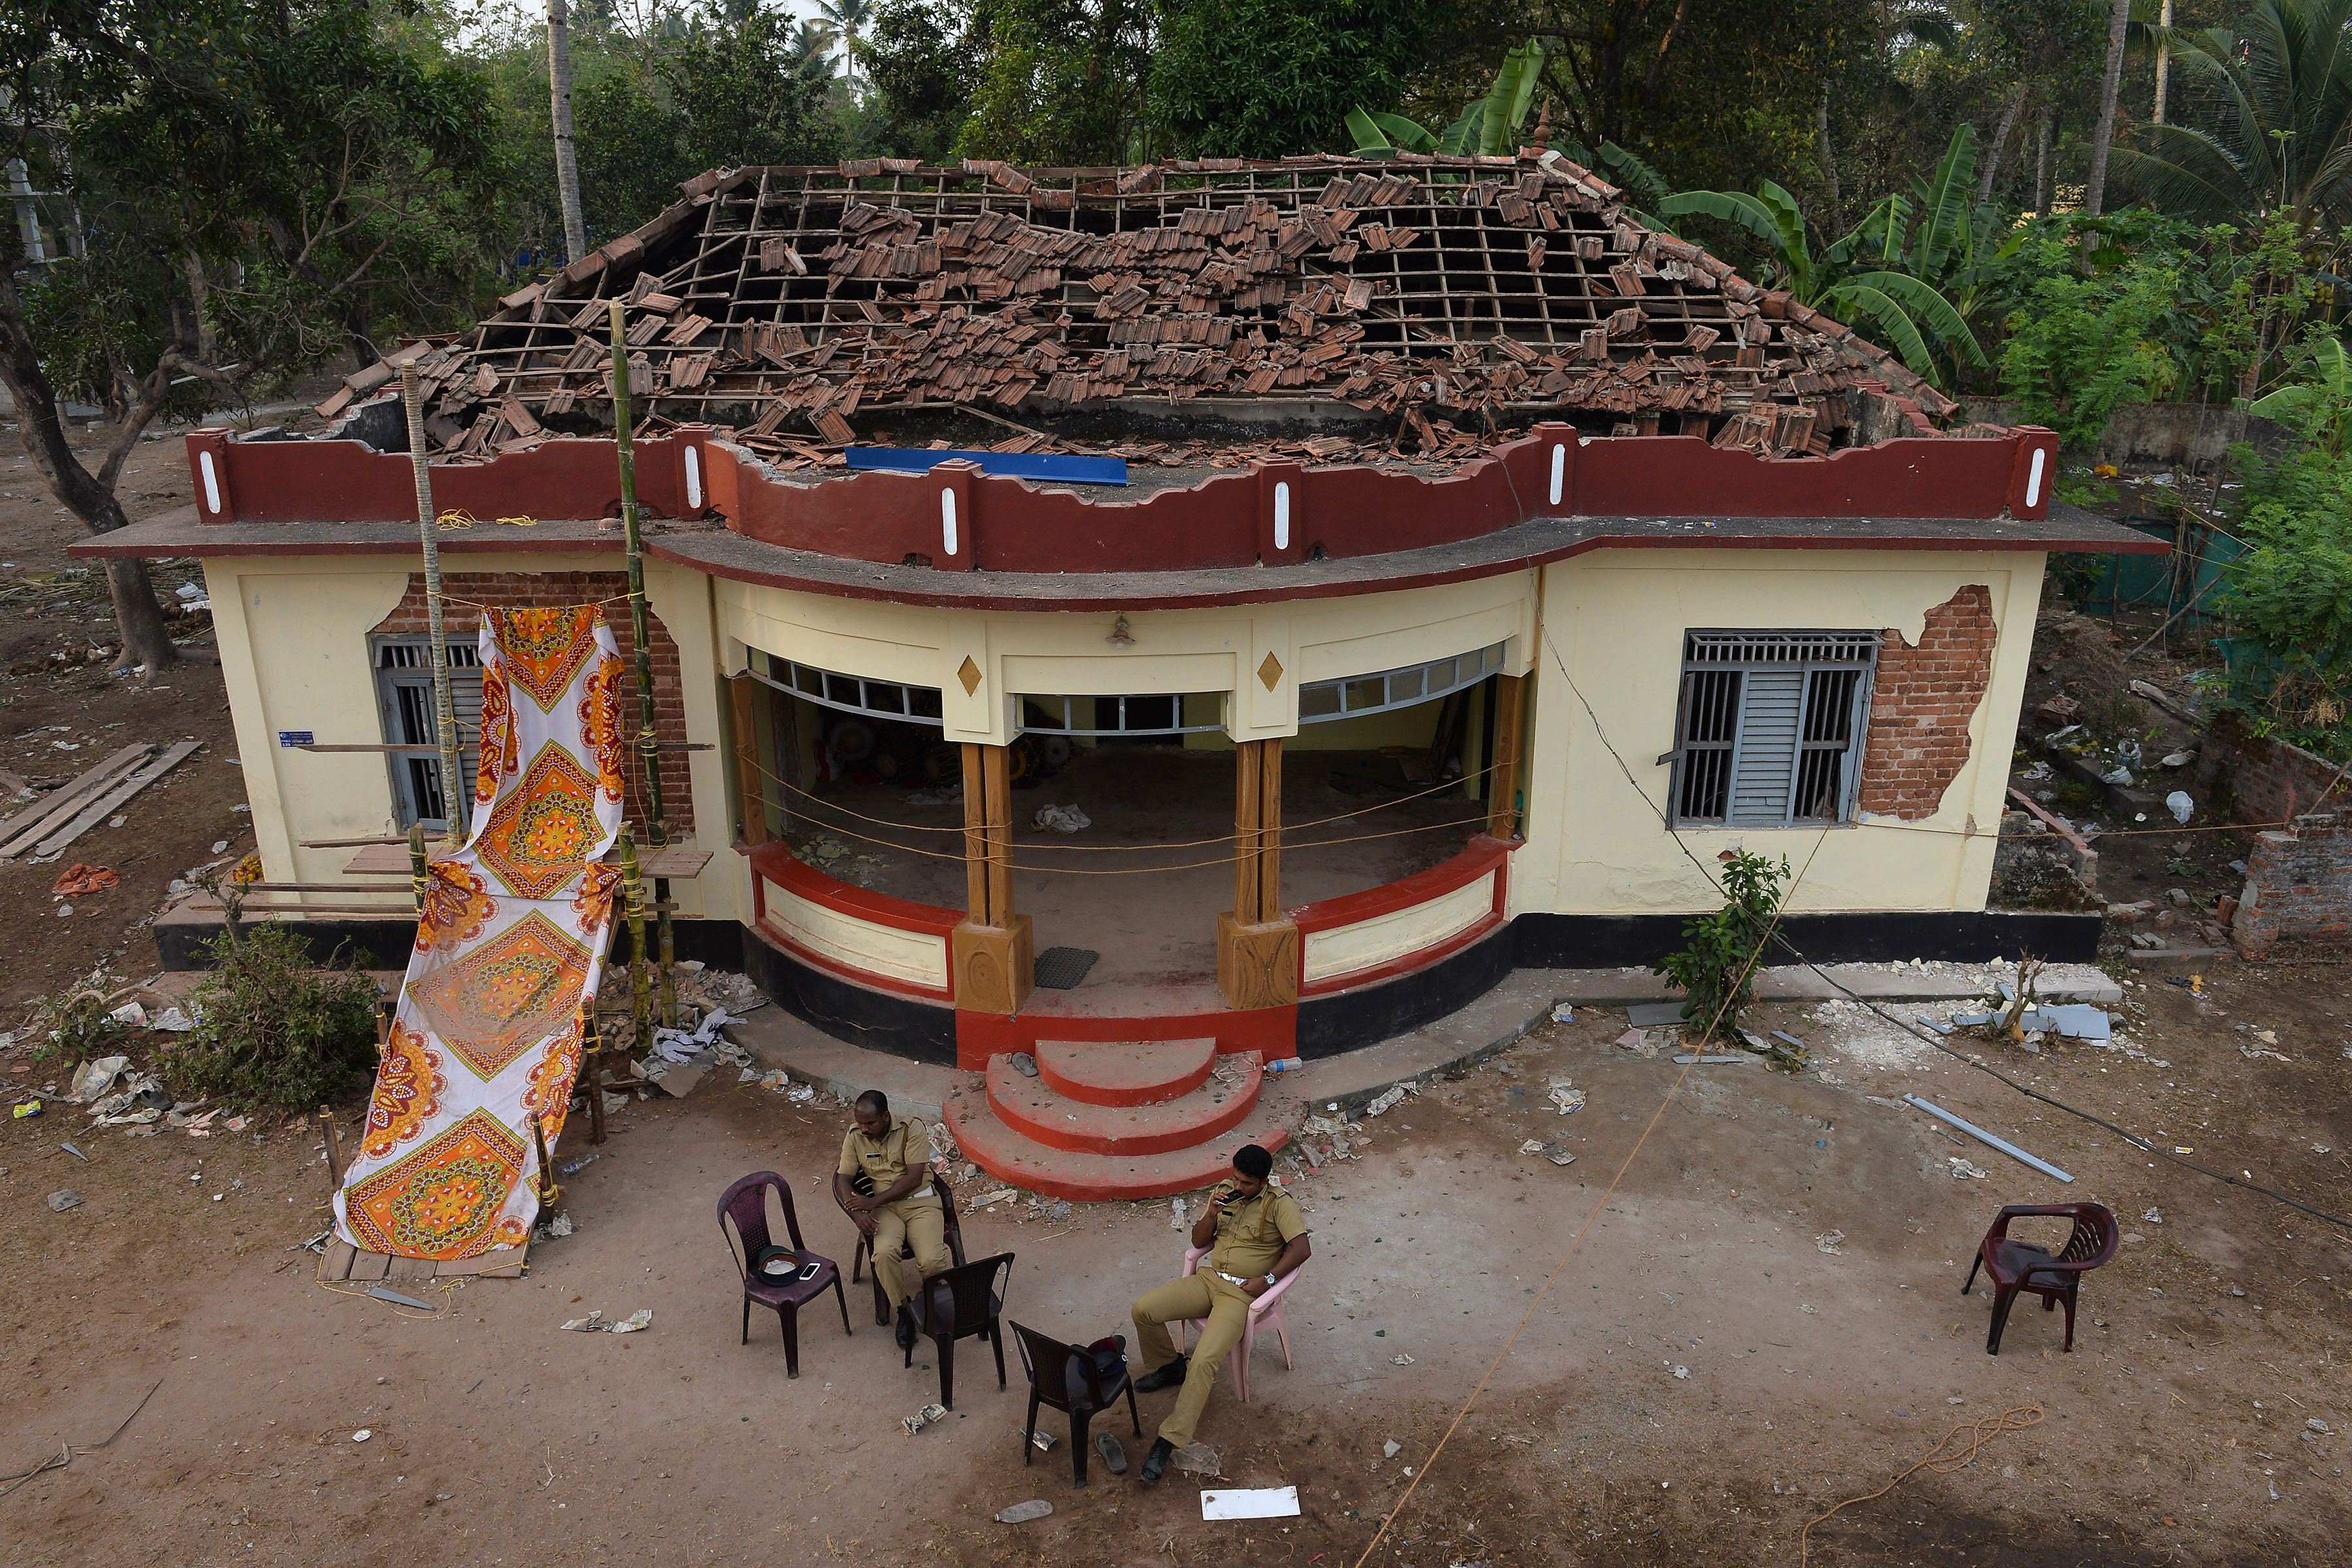 Indian police personnel sit in front of a damaged building at Puttingal Temple in the Indian town of Paravoor, some 60 km northwest of Thiruvananthapuram, Kerala state, on April 11, 2016